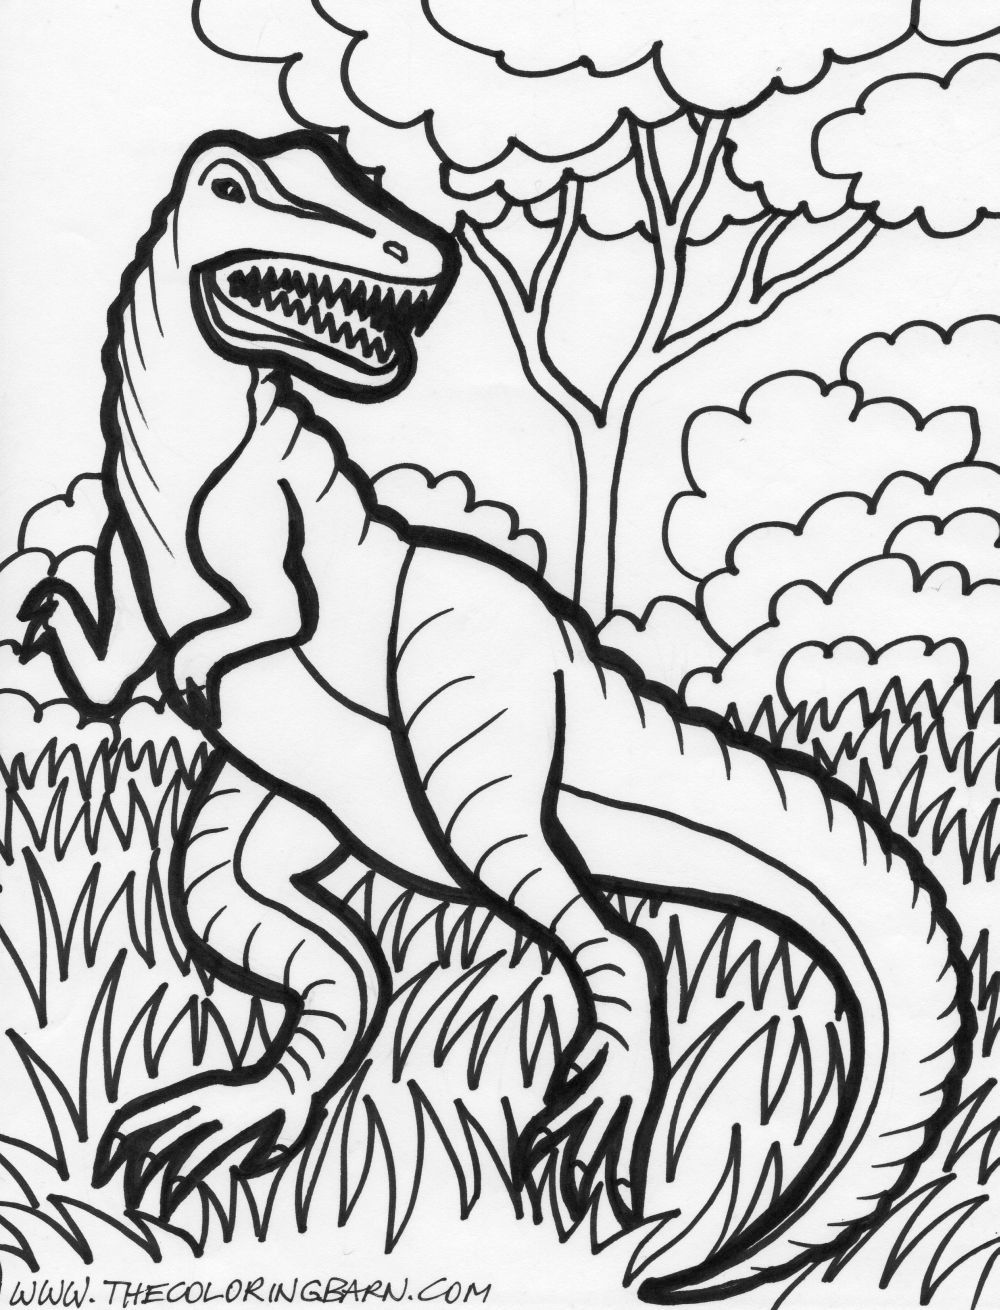 velociraptor Dinosaur coloring pages, Animal coloring